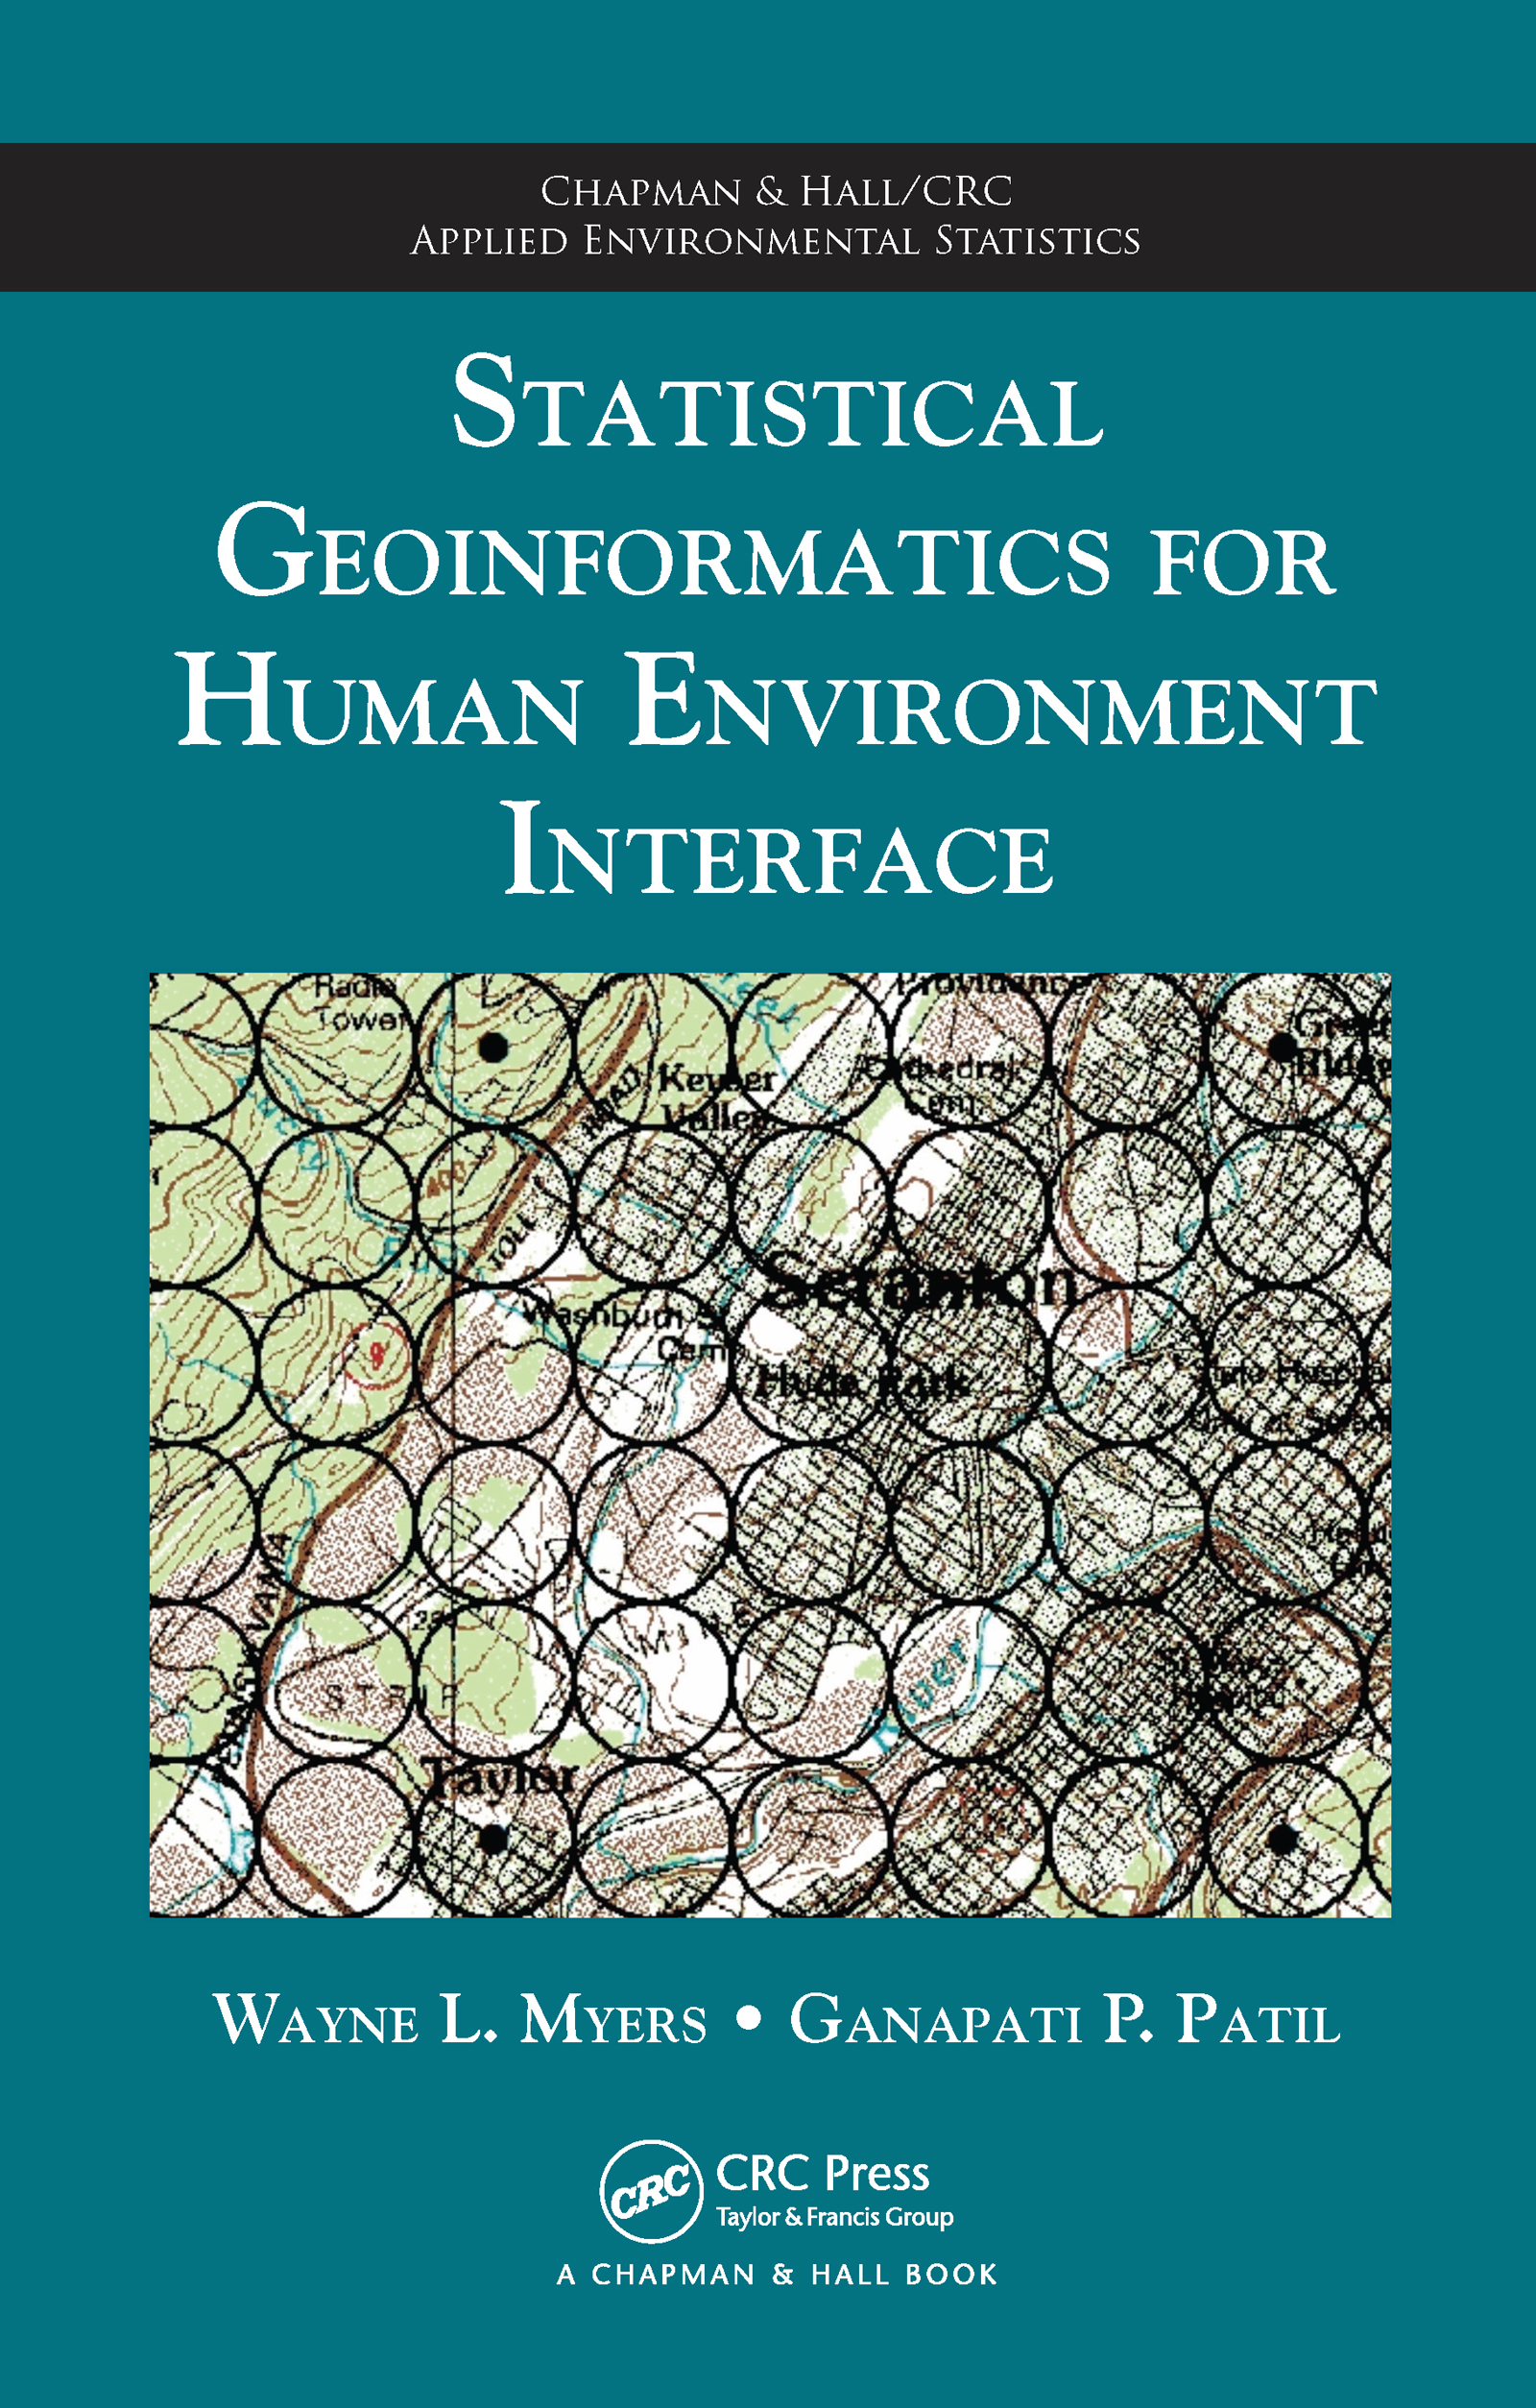 Statistical Geoinformatics for Human Environment Interface book cover